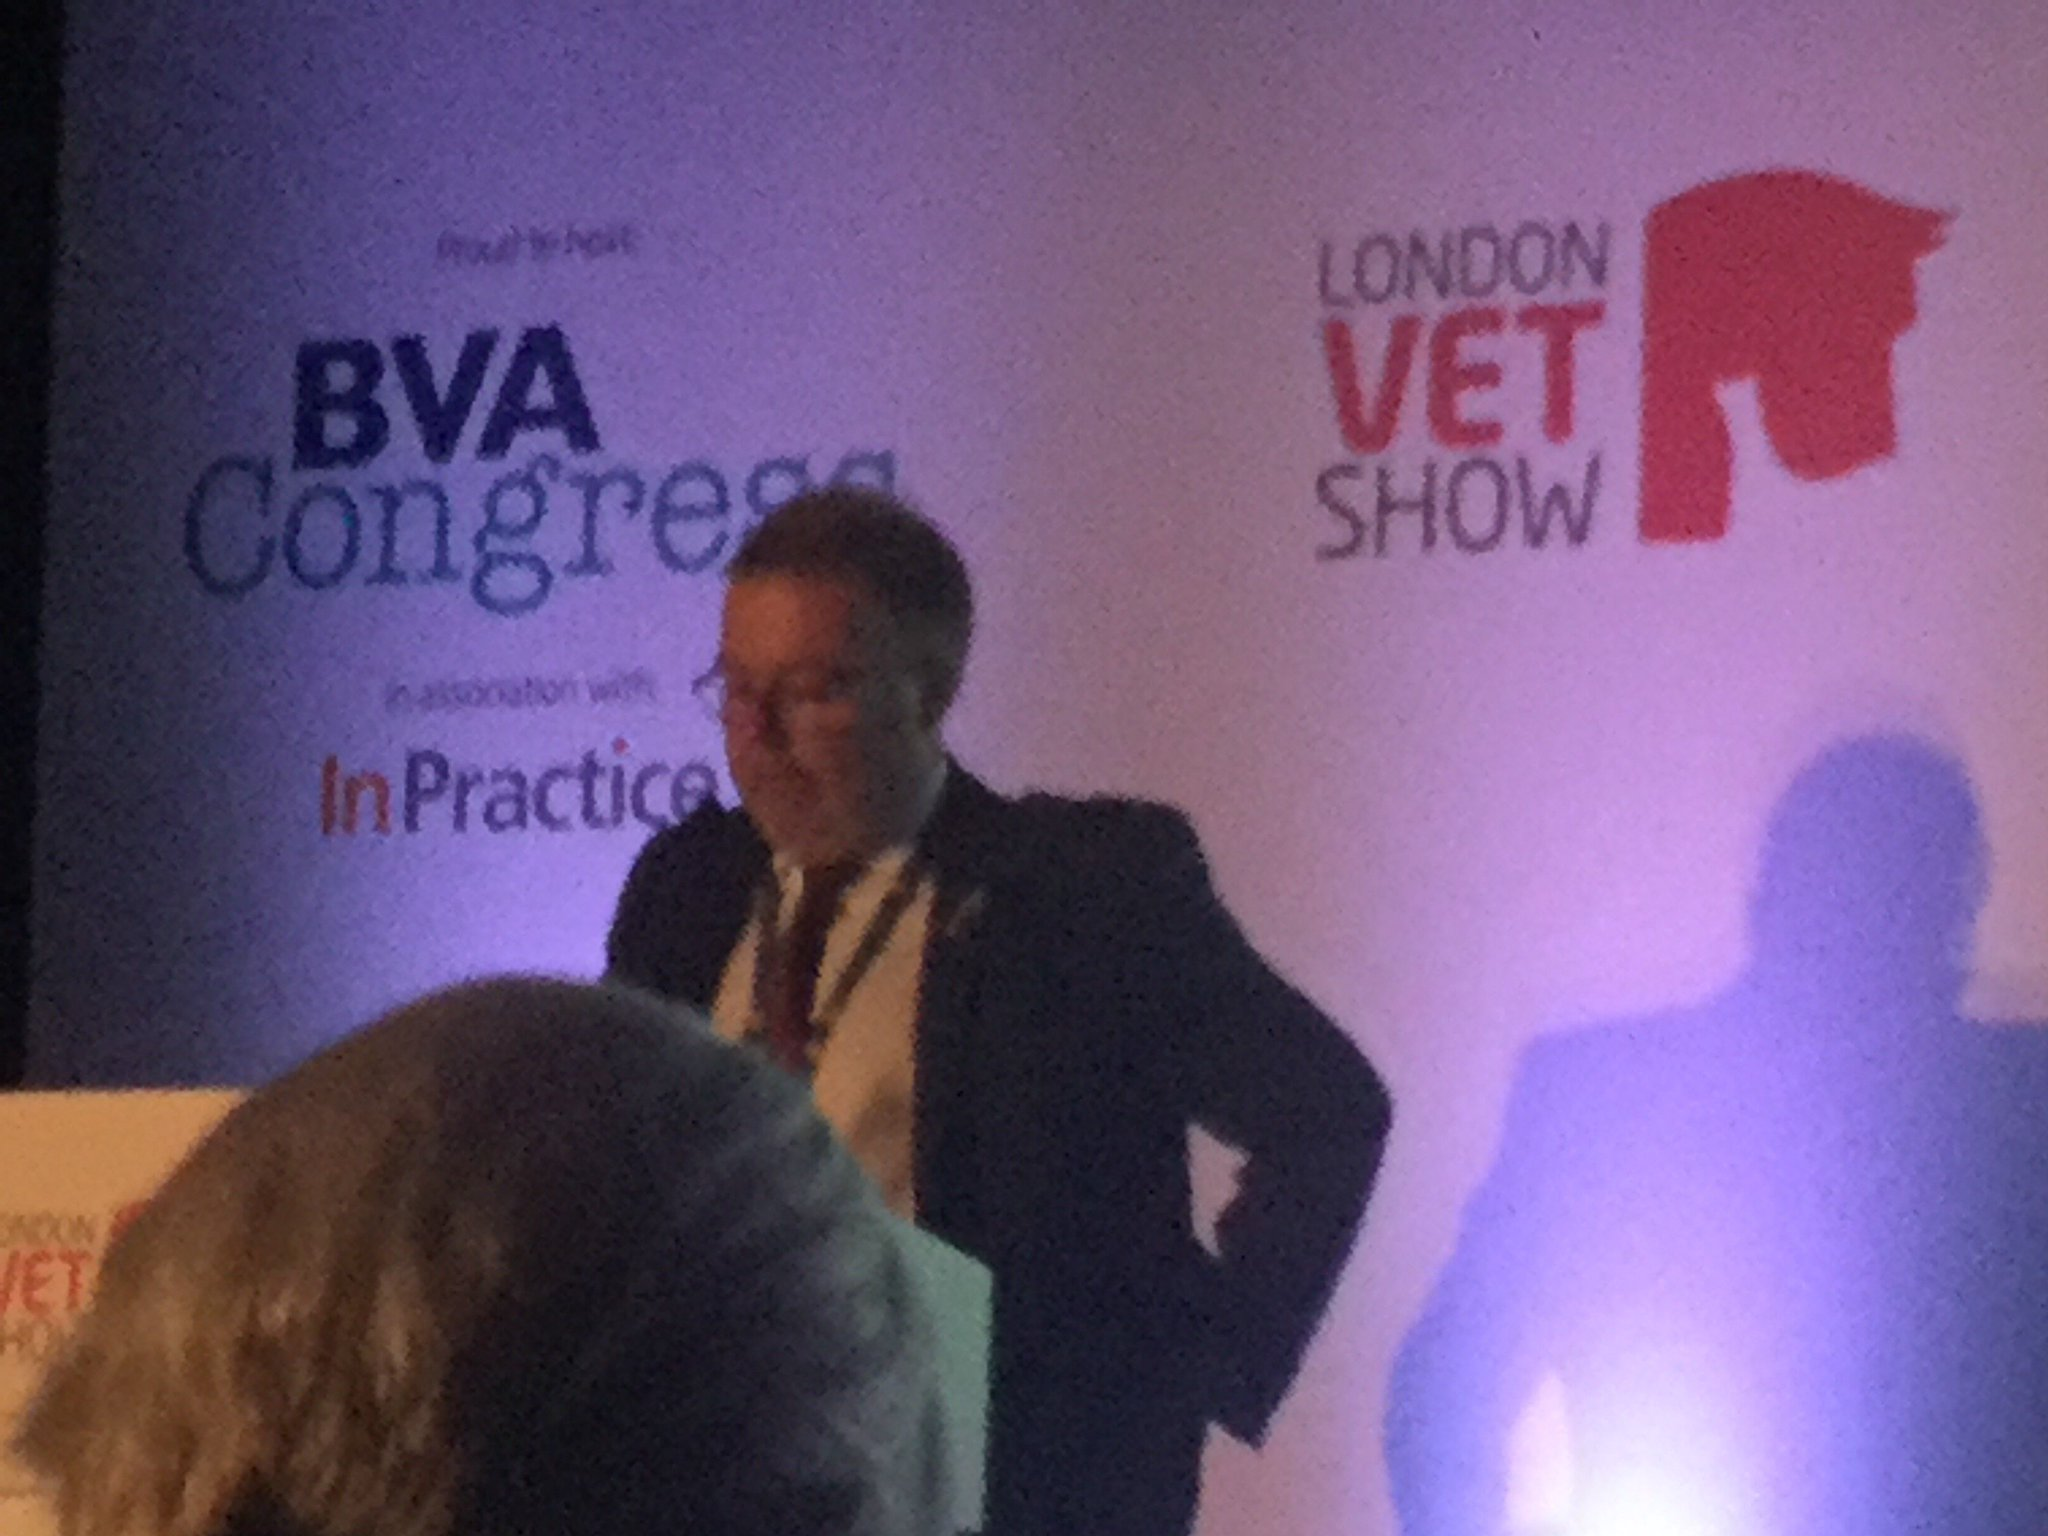 Nigel Gibbens @ChiefVetUK says 2015 figures show antibiotic use in livestock down by 10%. Good news for #AMR, #vetshow, @BritishVets @ruma https://t.co/0C5Ty3PelX